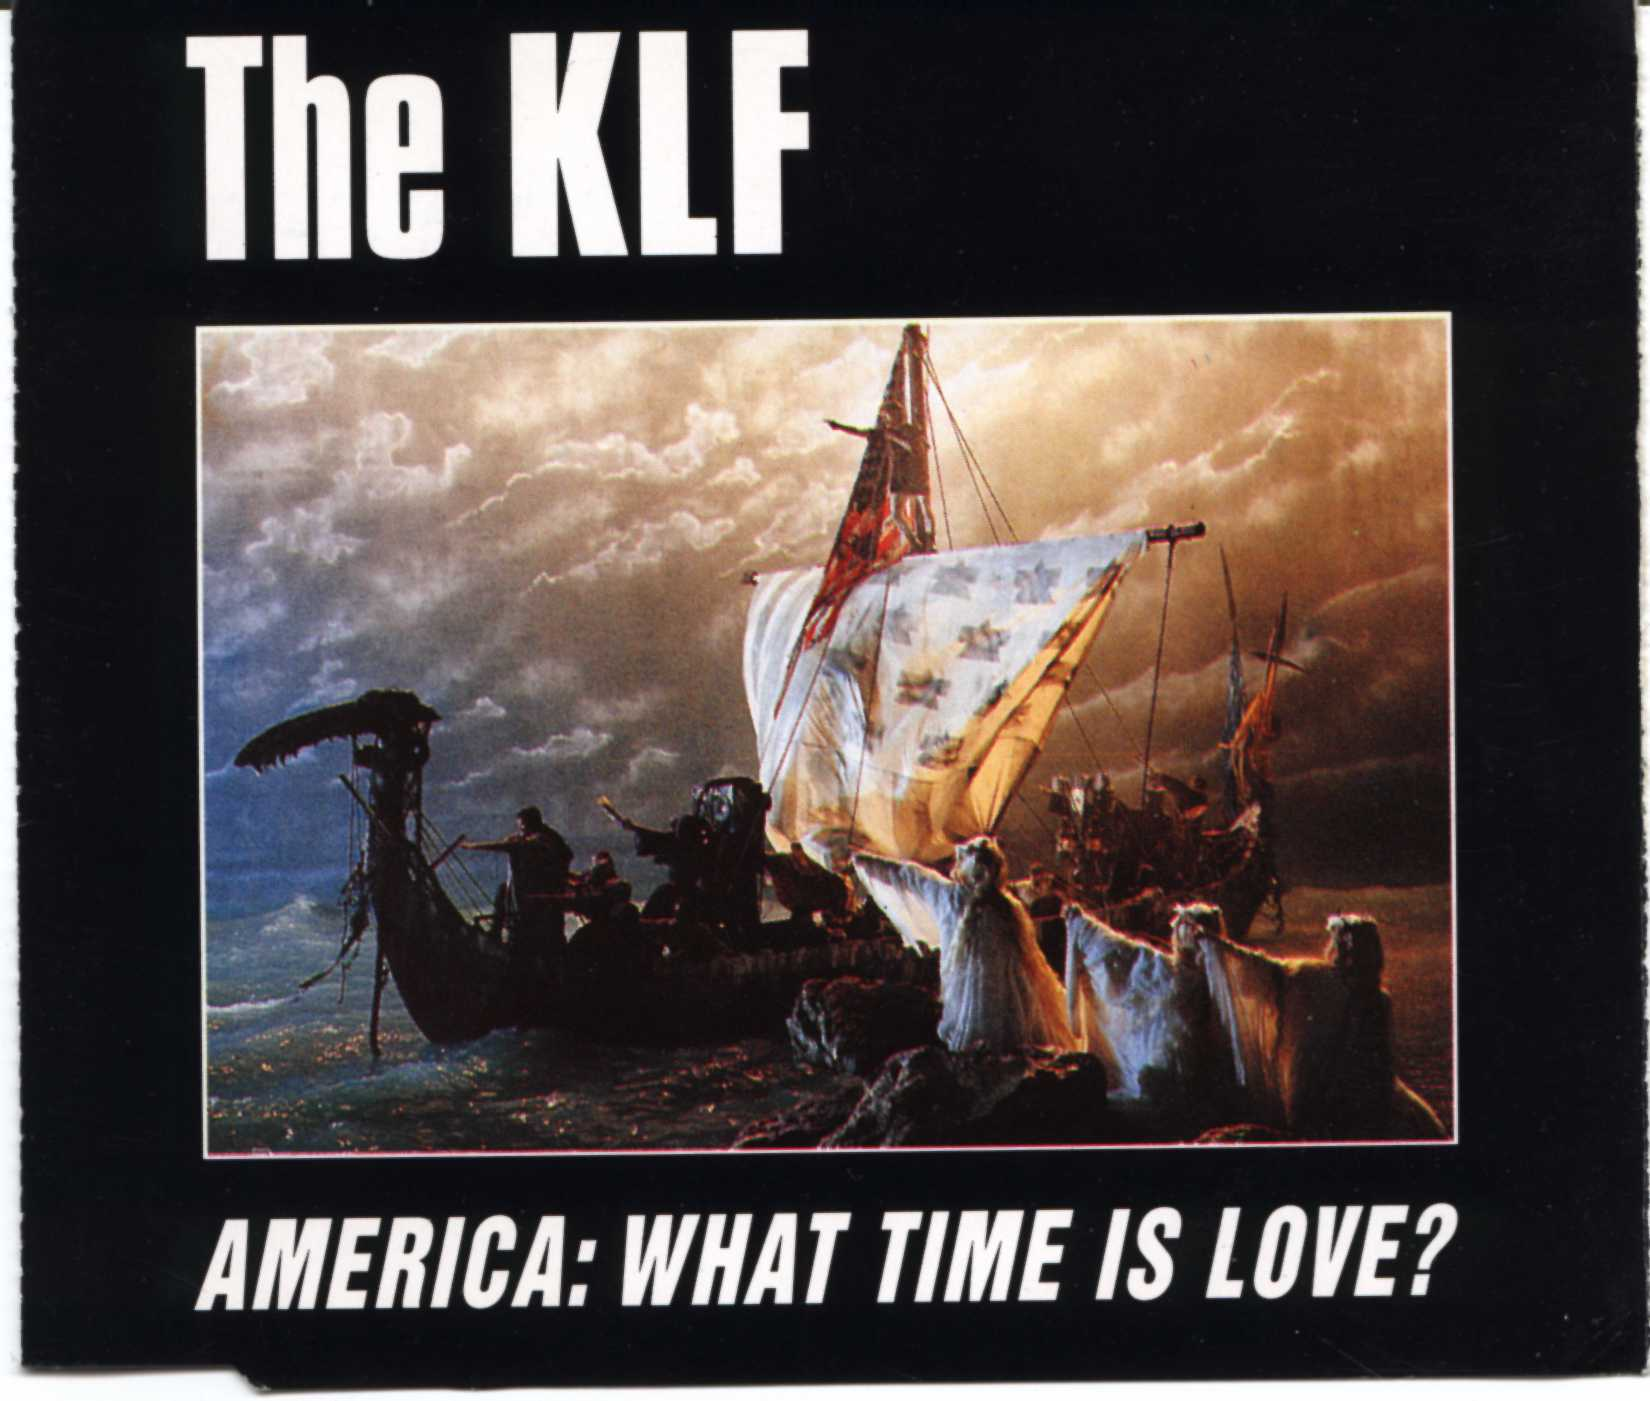 KLF, The - Justified & Ancient (Anti-Acapella Version)